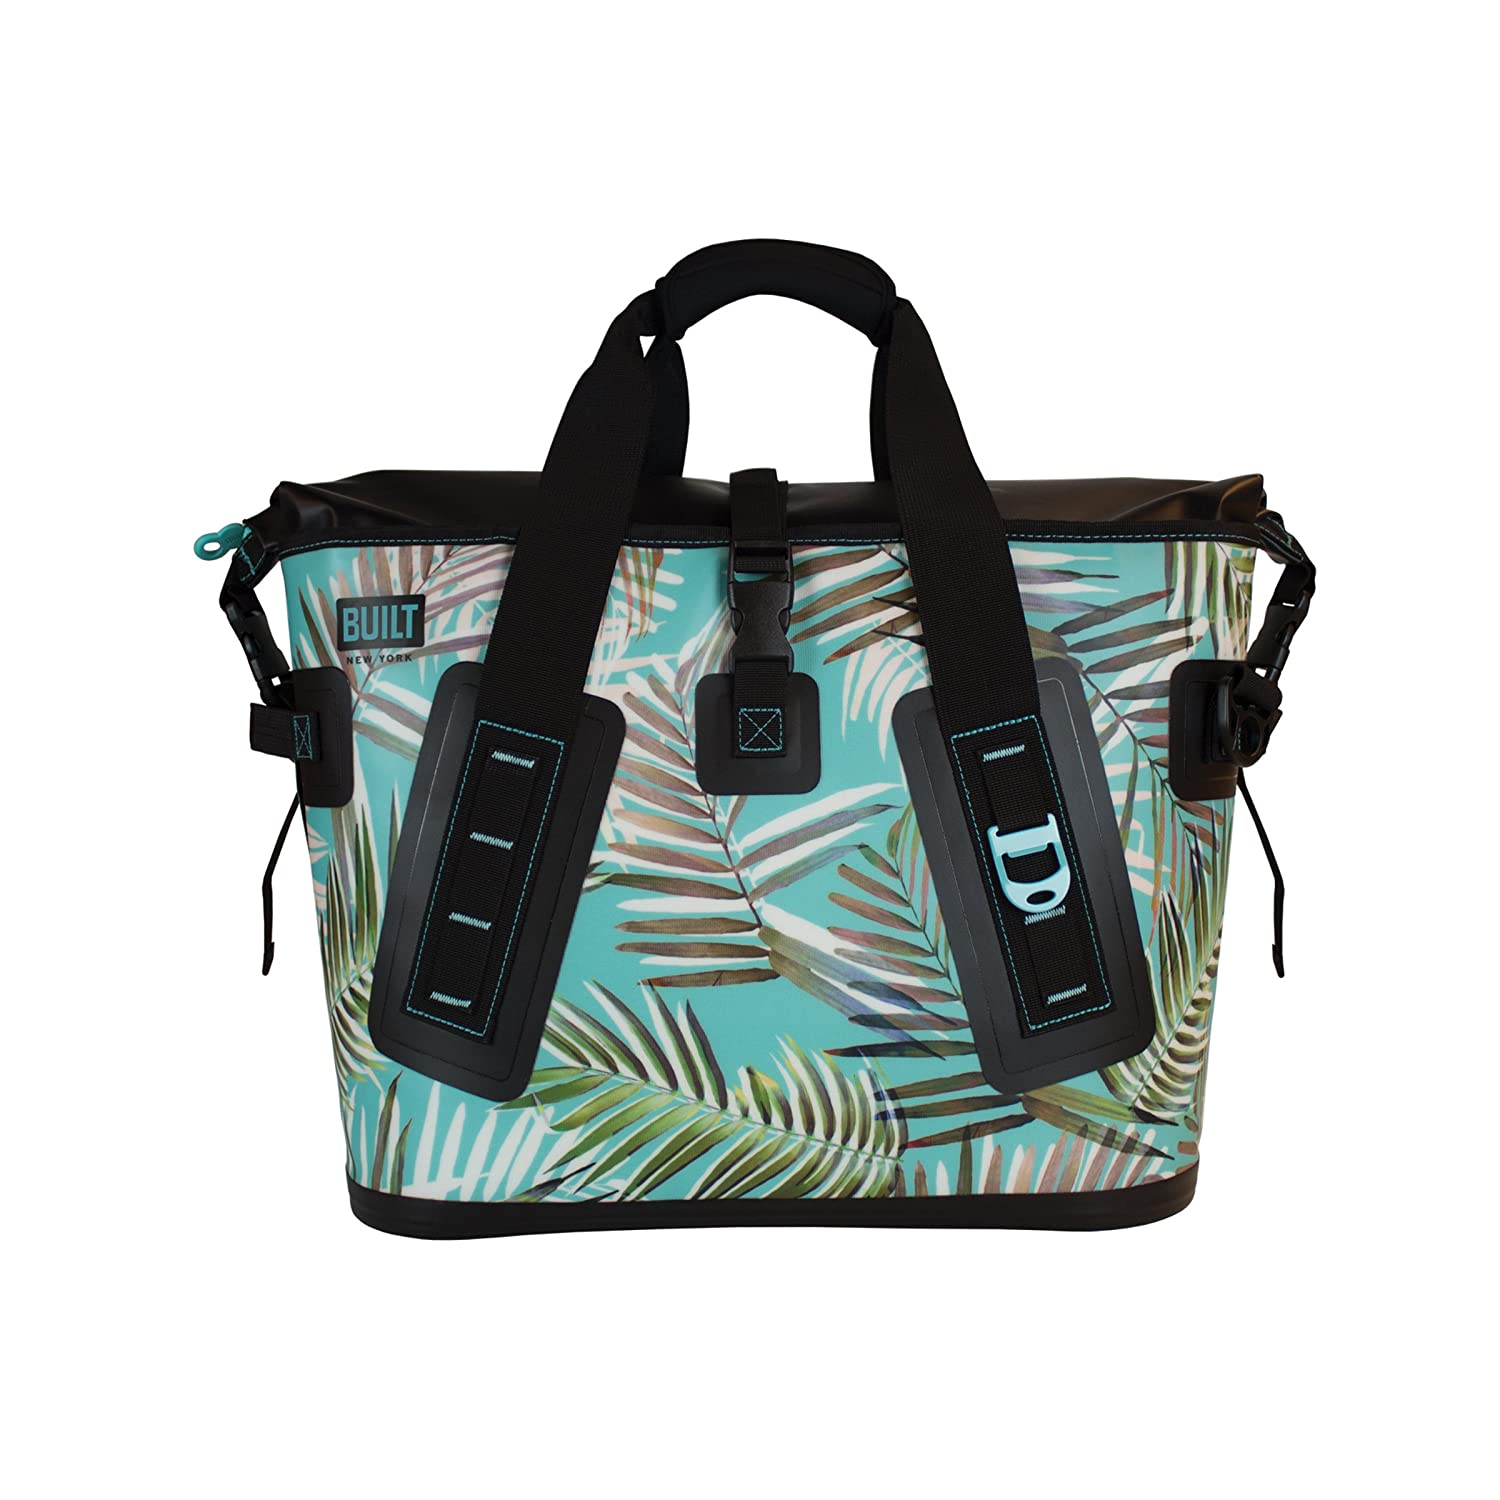 Pewter Lily Gray Insulated and Leak-Proof Large BUILT 5238361 Welded Soft Portable Cooler with Wide Mouth Opening